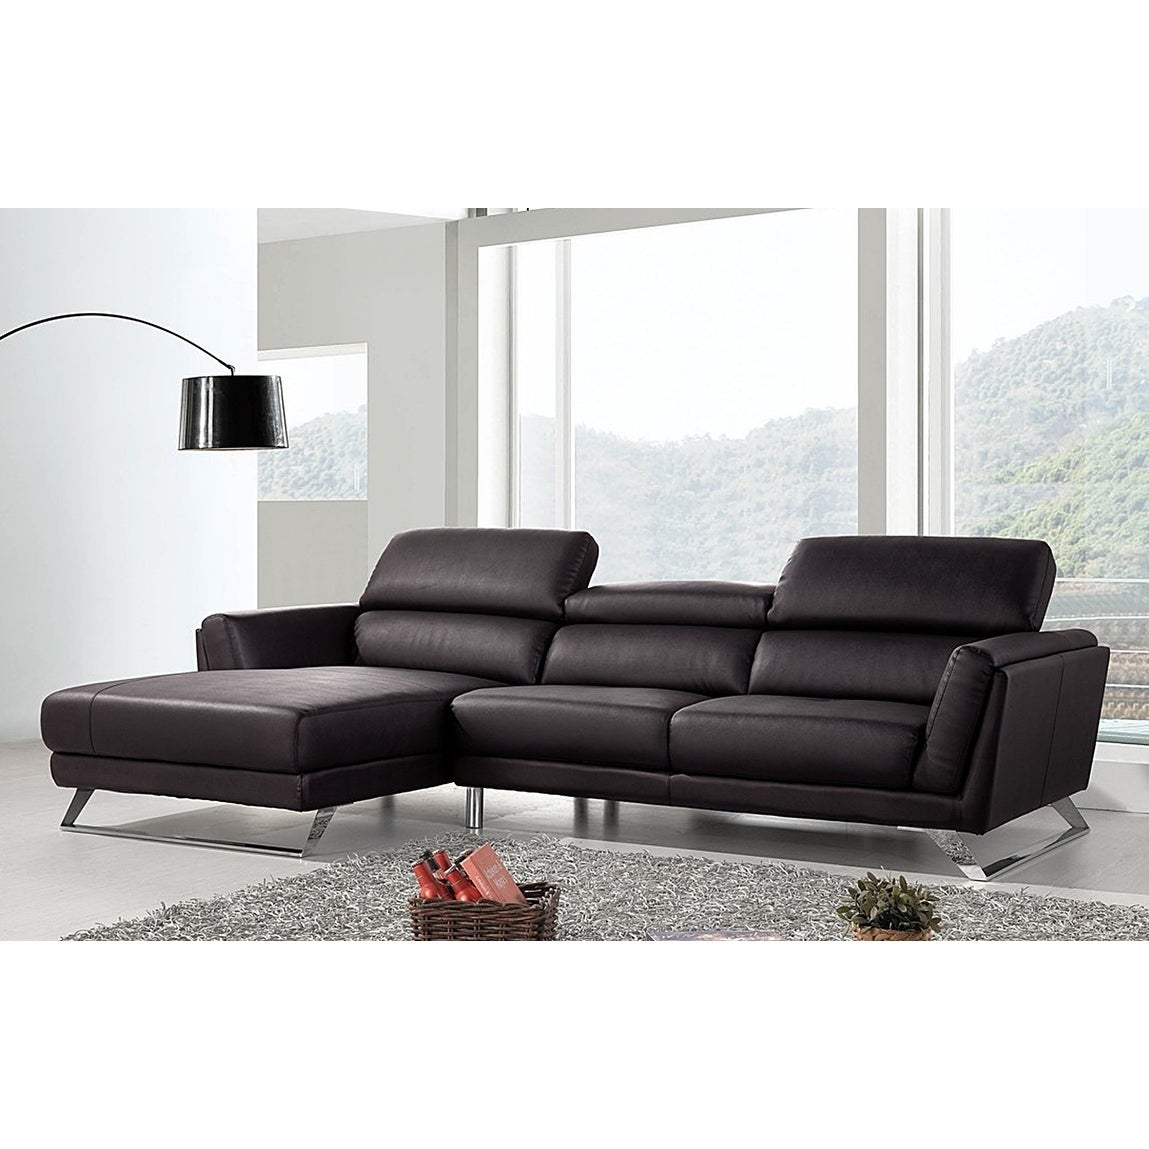 L Shape Couches Black L Couch Black L Shaped Couch Couches For Sale ...